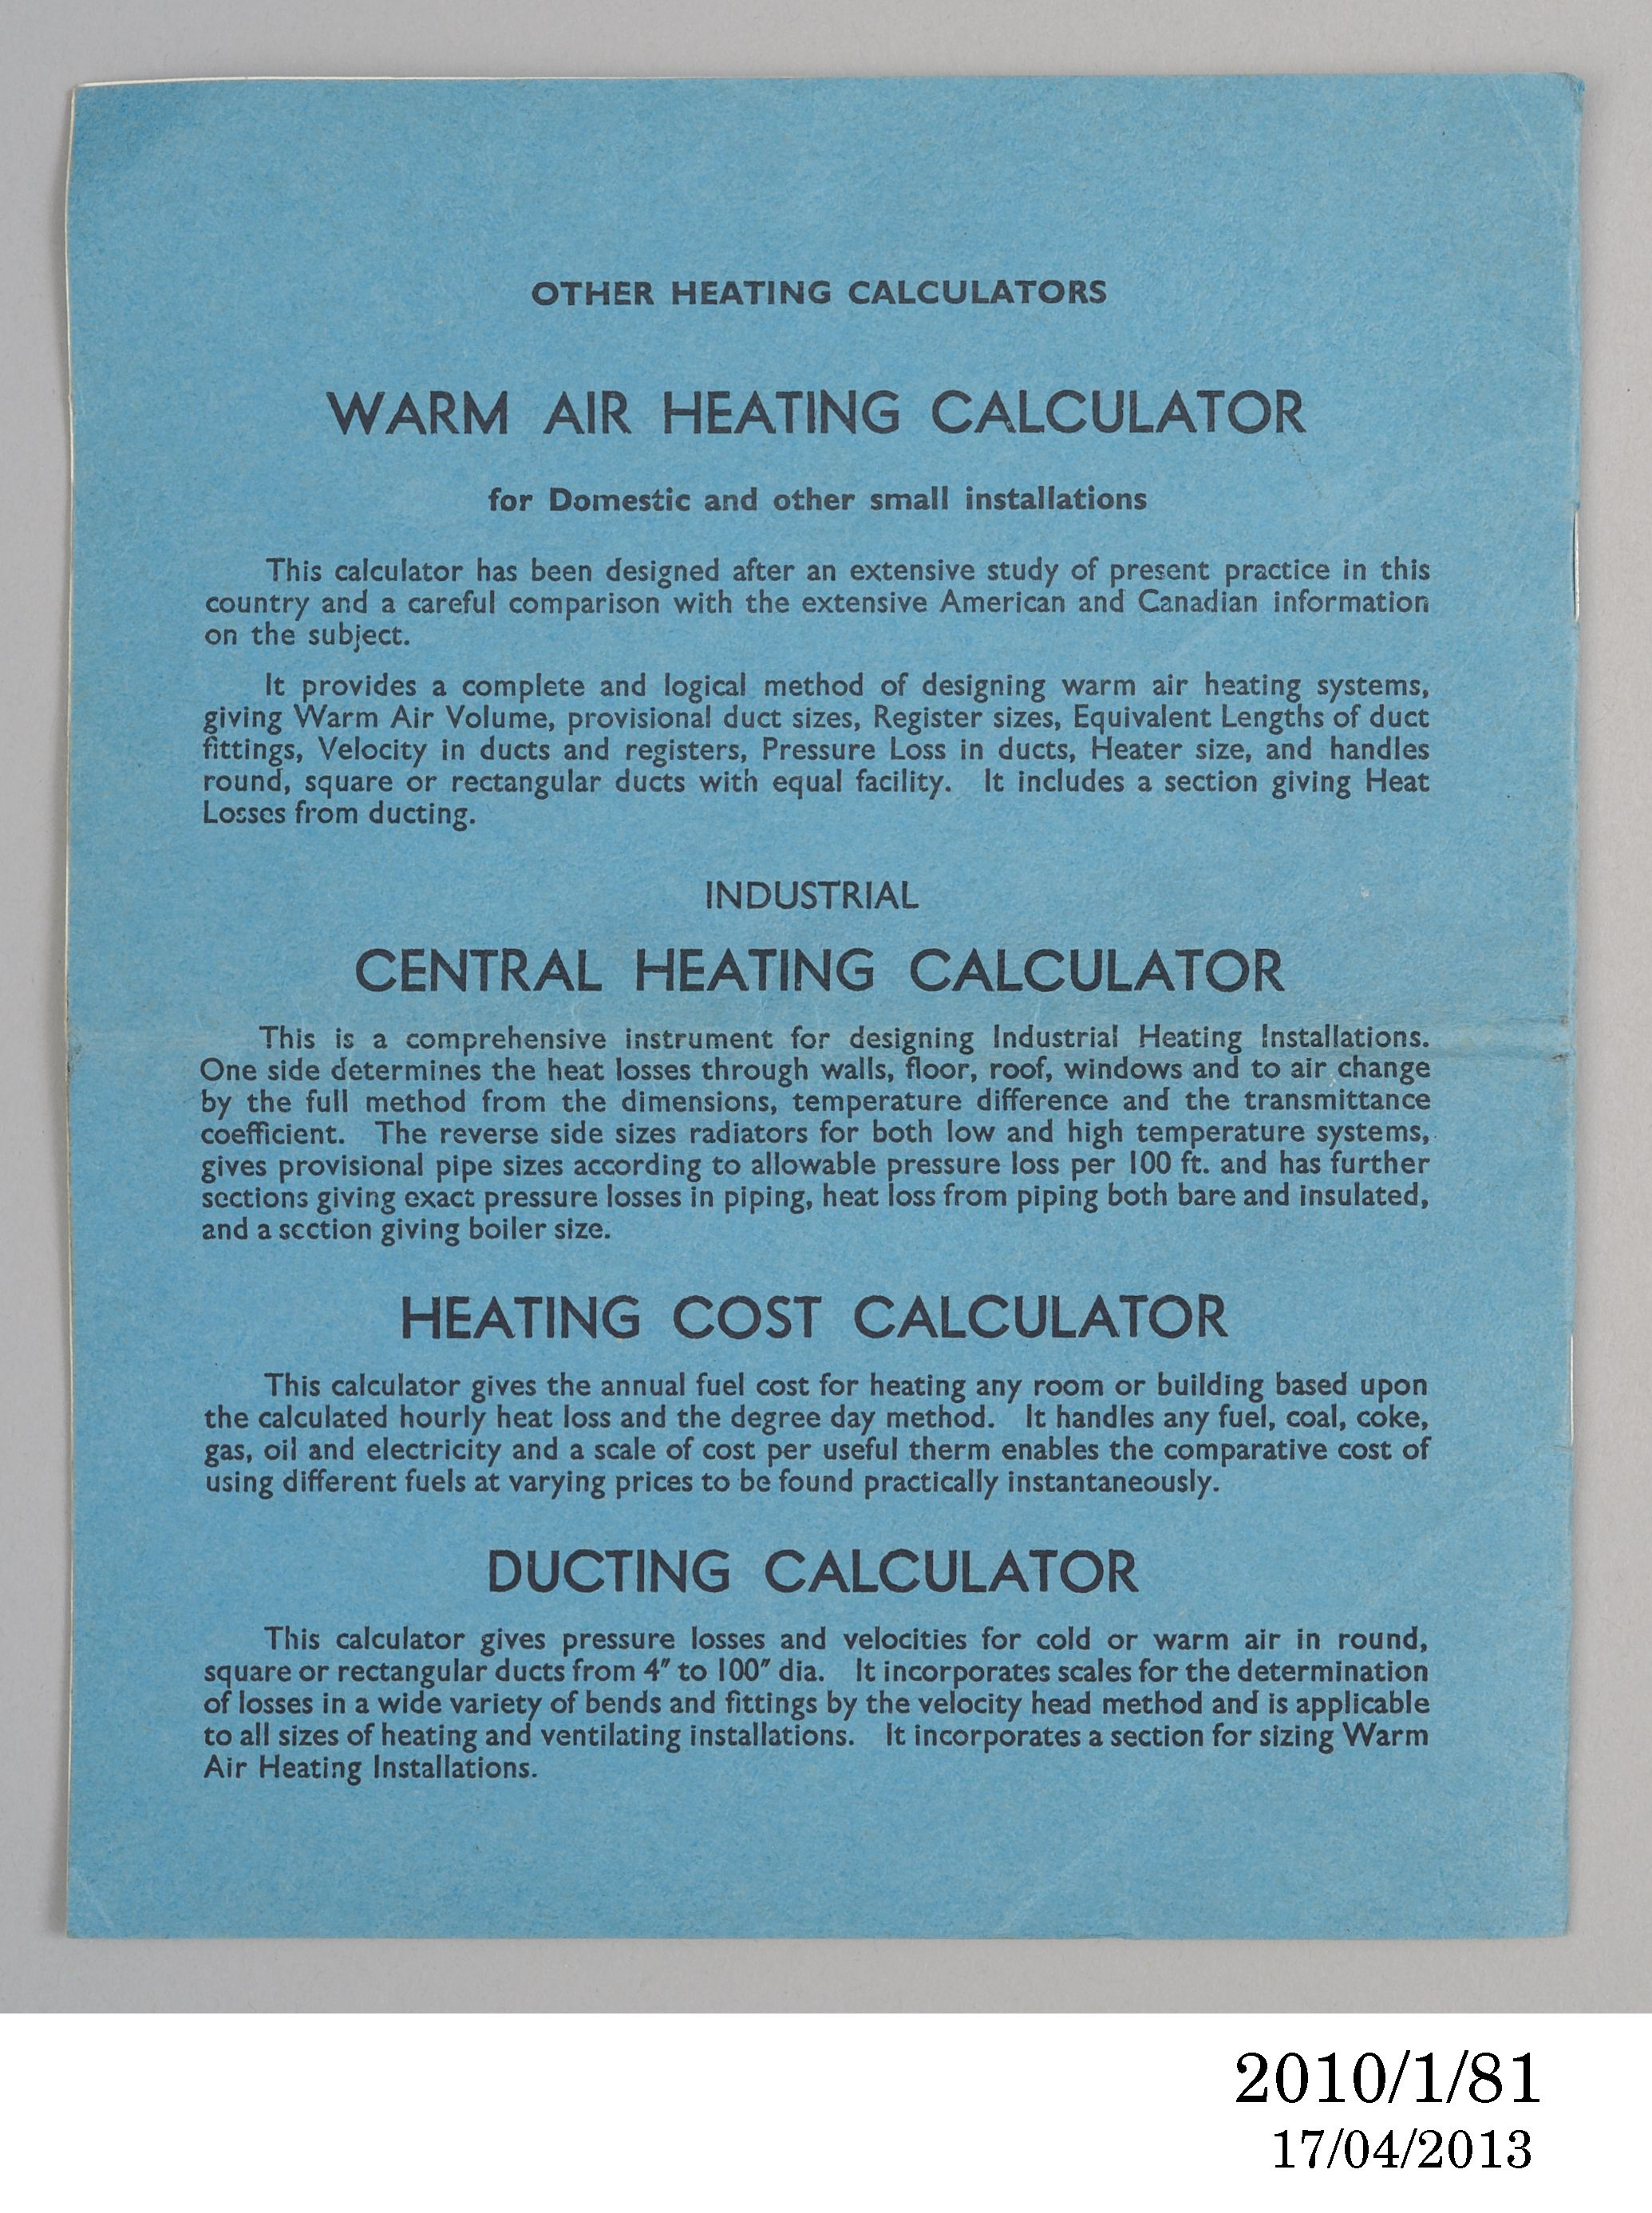 Domestic central heating calculator - MAAS Collection